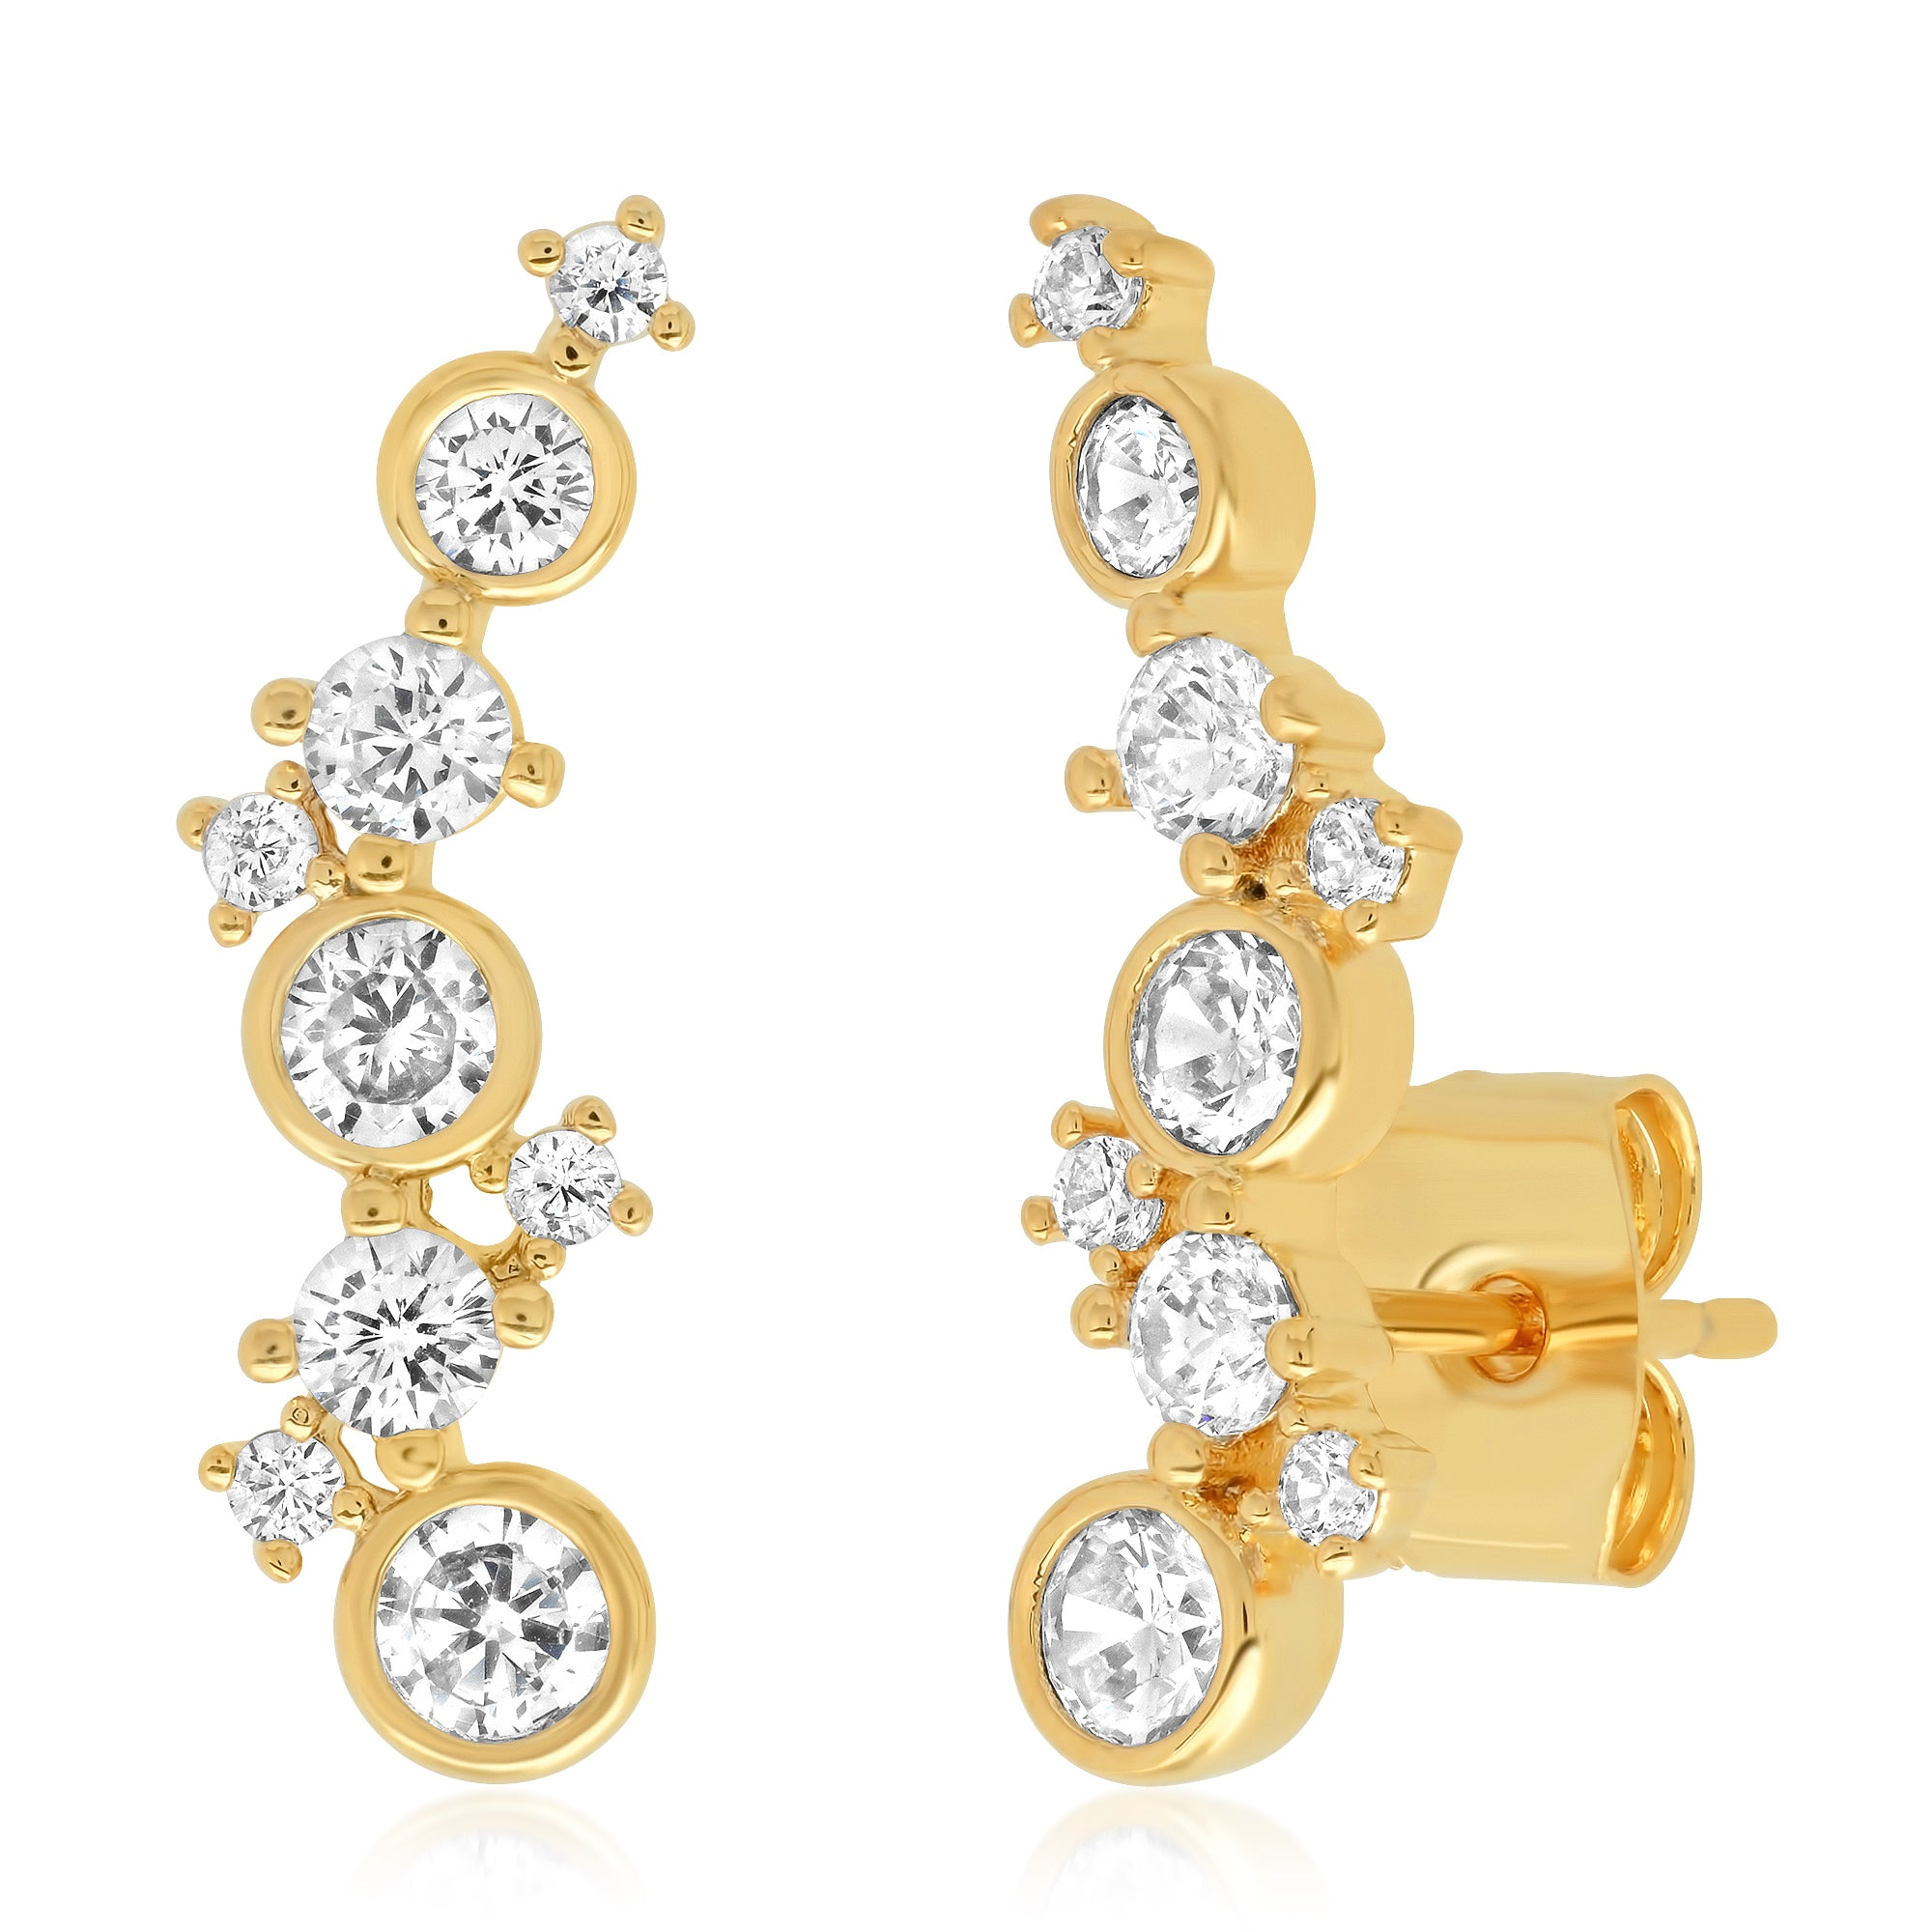 Elegant Gold Climbers with CZ Accents